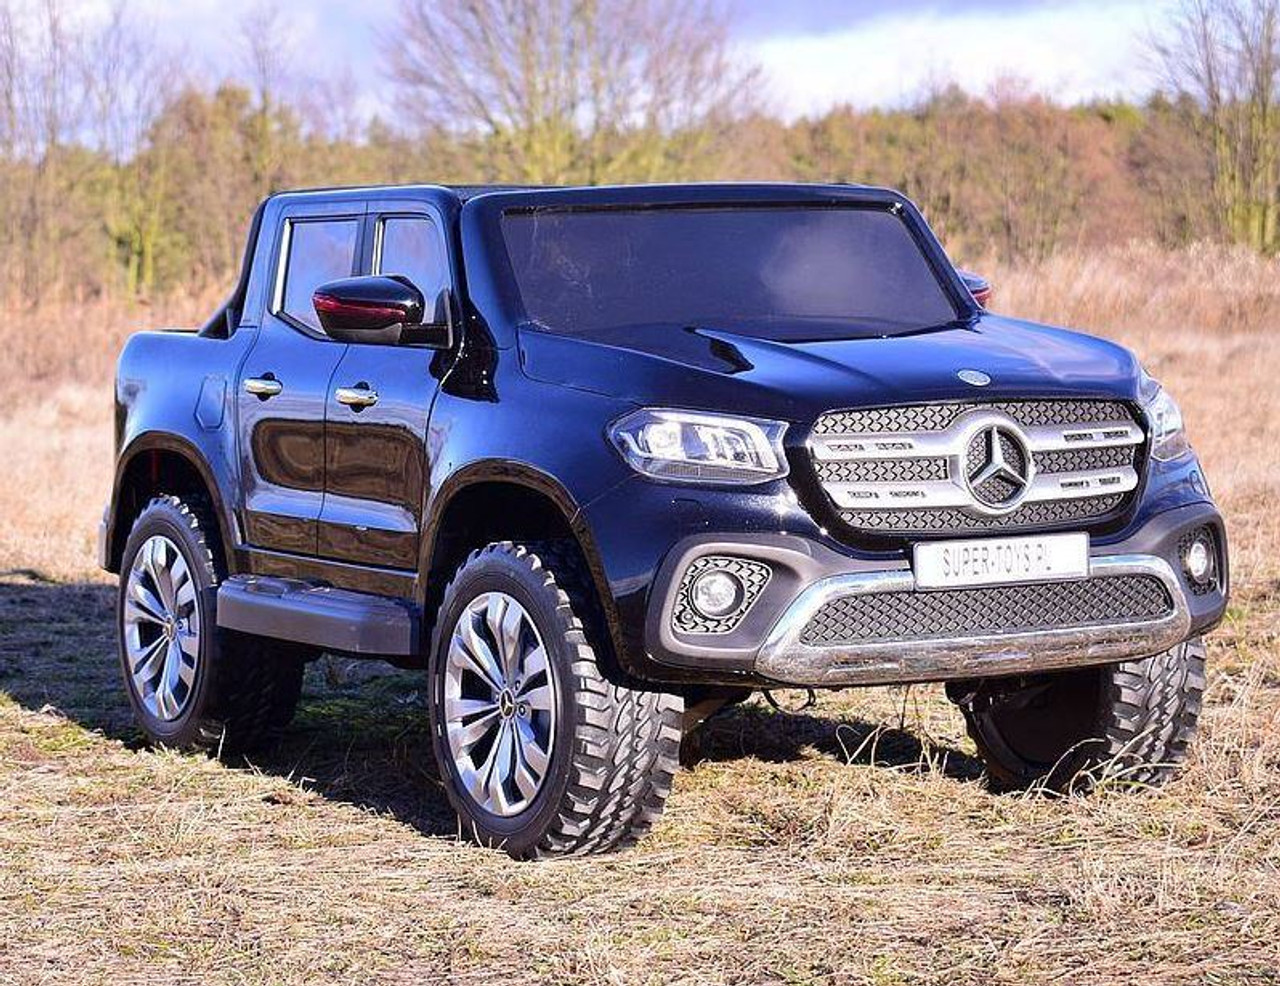 Mercedes Benz X Class Licensed 24v Electric 2 Seat Kids Ride On Jeep Eva Rubber Wheels 4 Wheel Drive Black Www Funstuff Ie